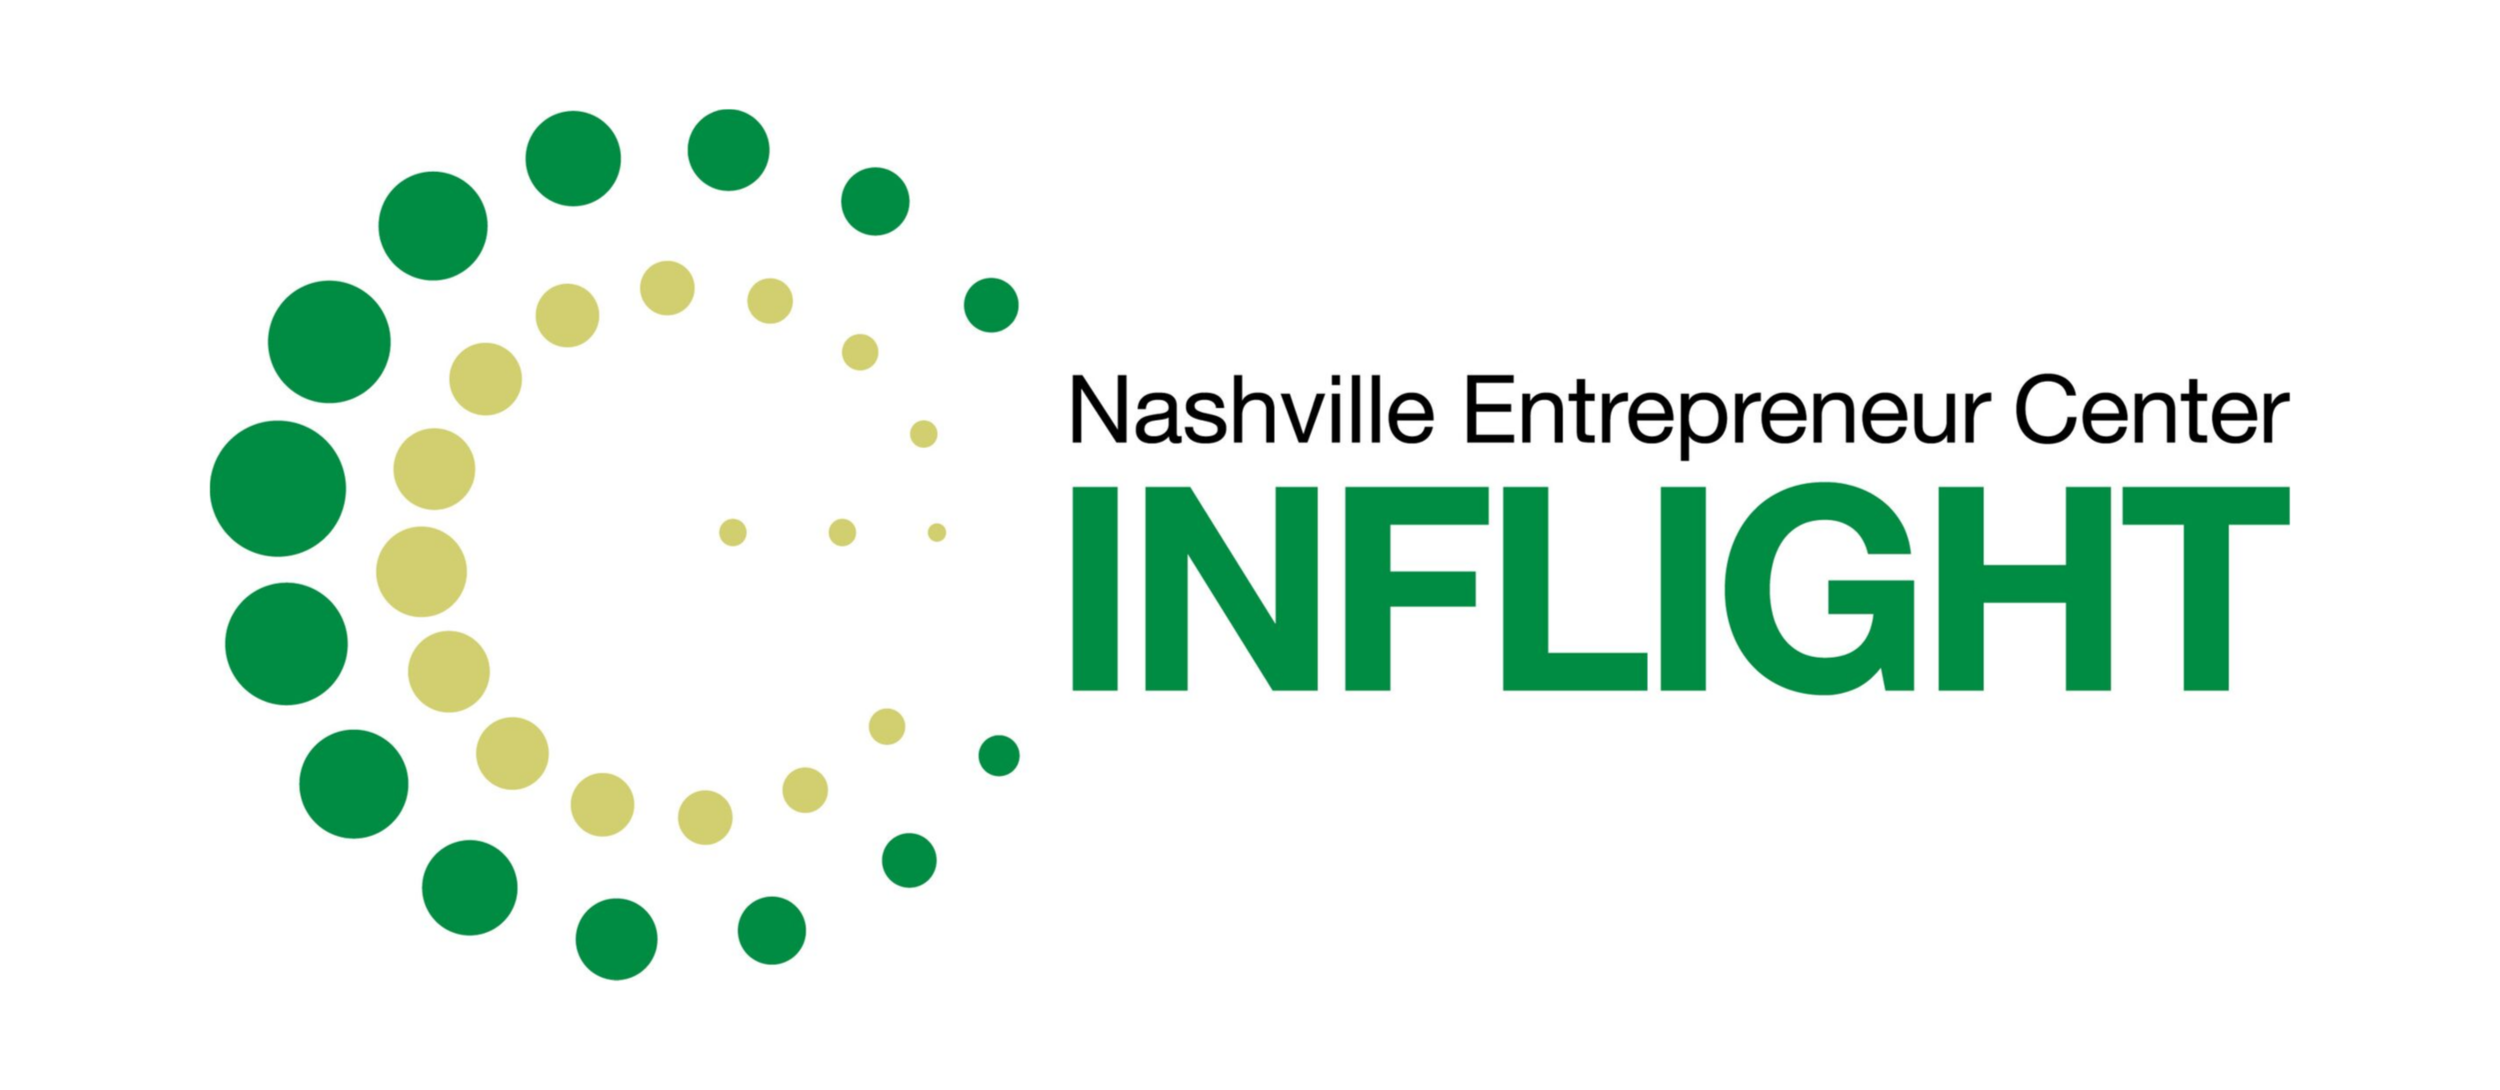 A year-long program supporting the growth and development of early-stage startups in Nashville from any industry.